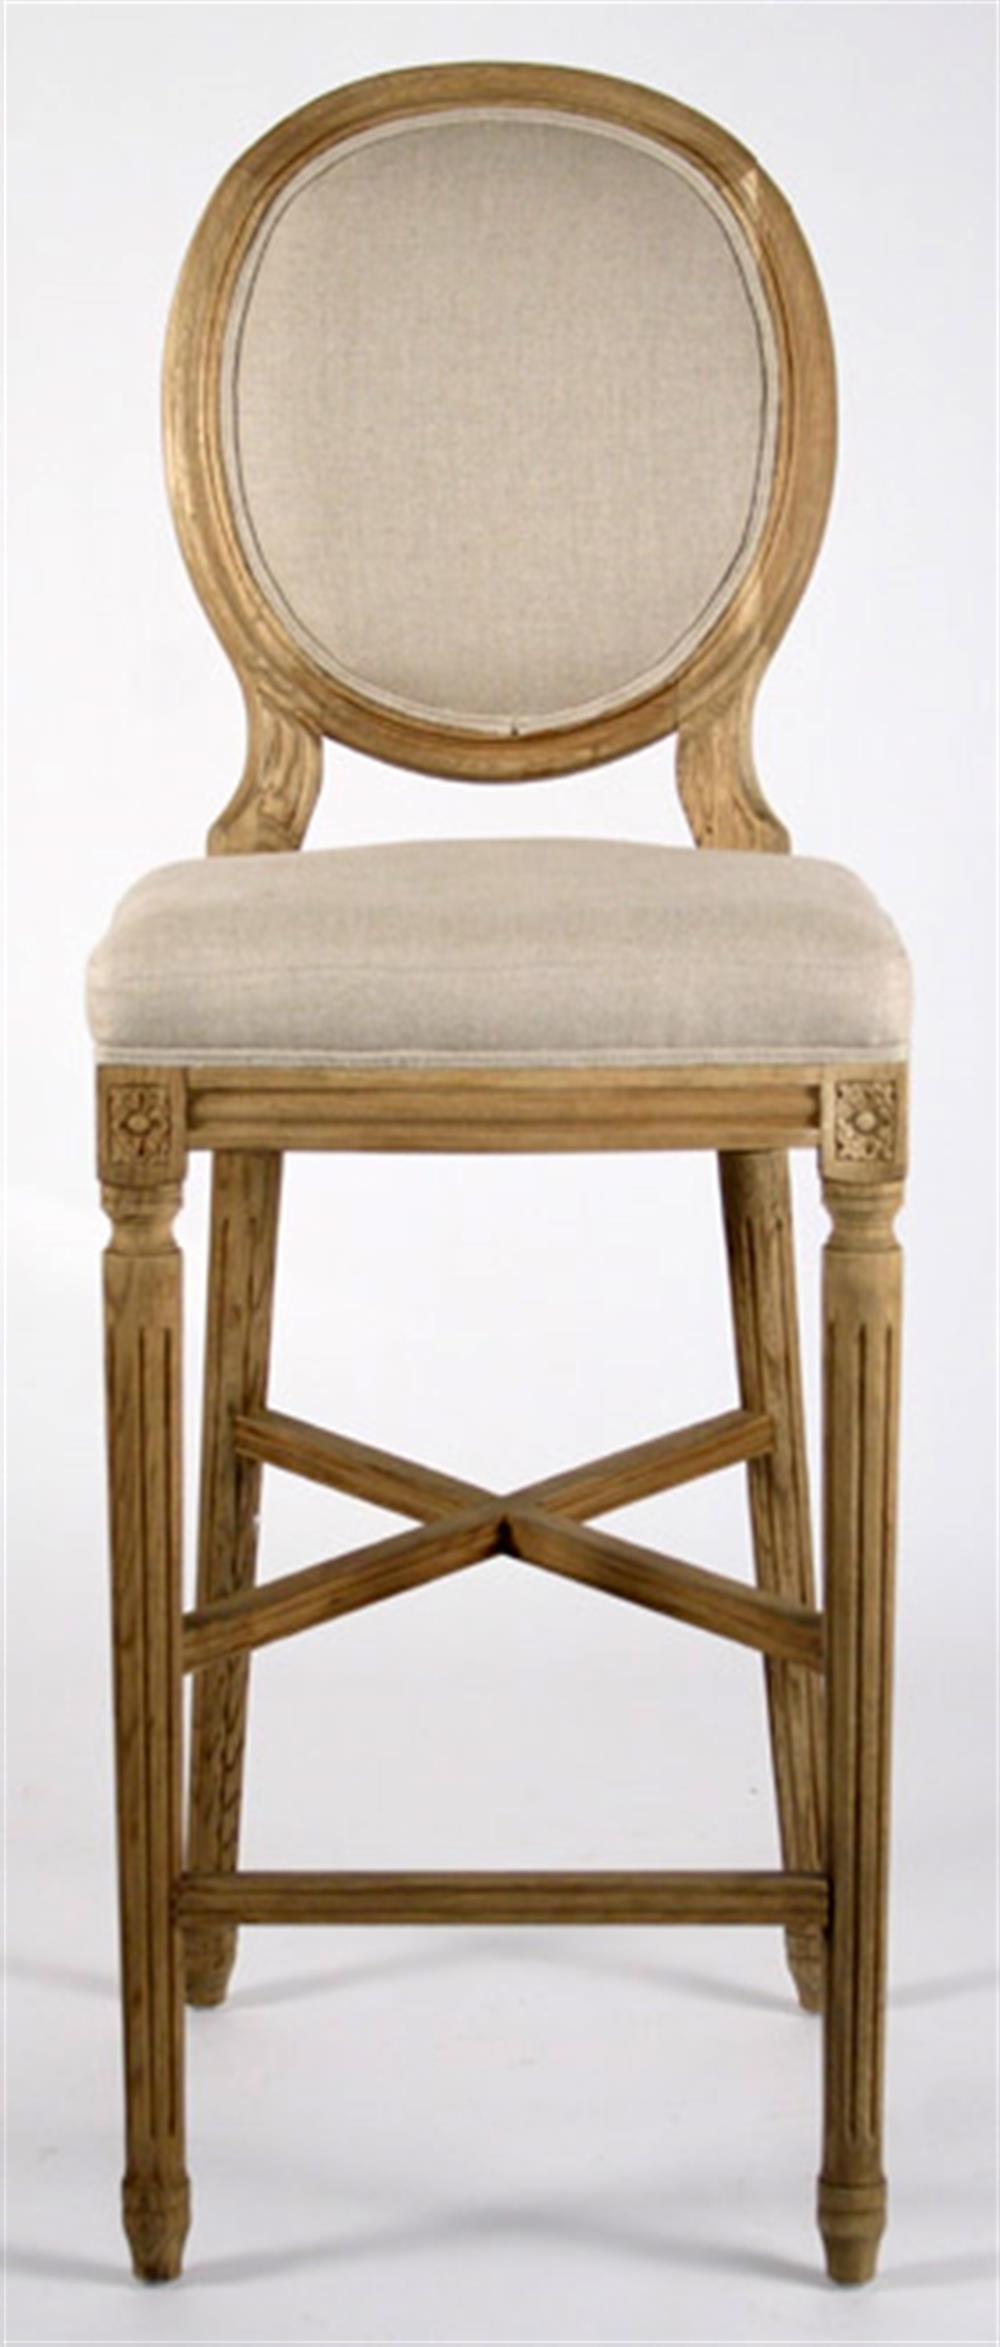 Furniture: Velvet Stool | French Country Counter Stools | French Inside French Country Counter Stools Decor For Your Kitchen (View 9 of 20)